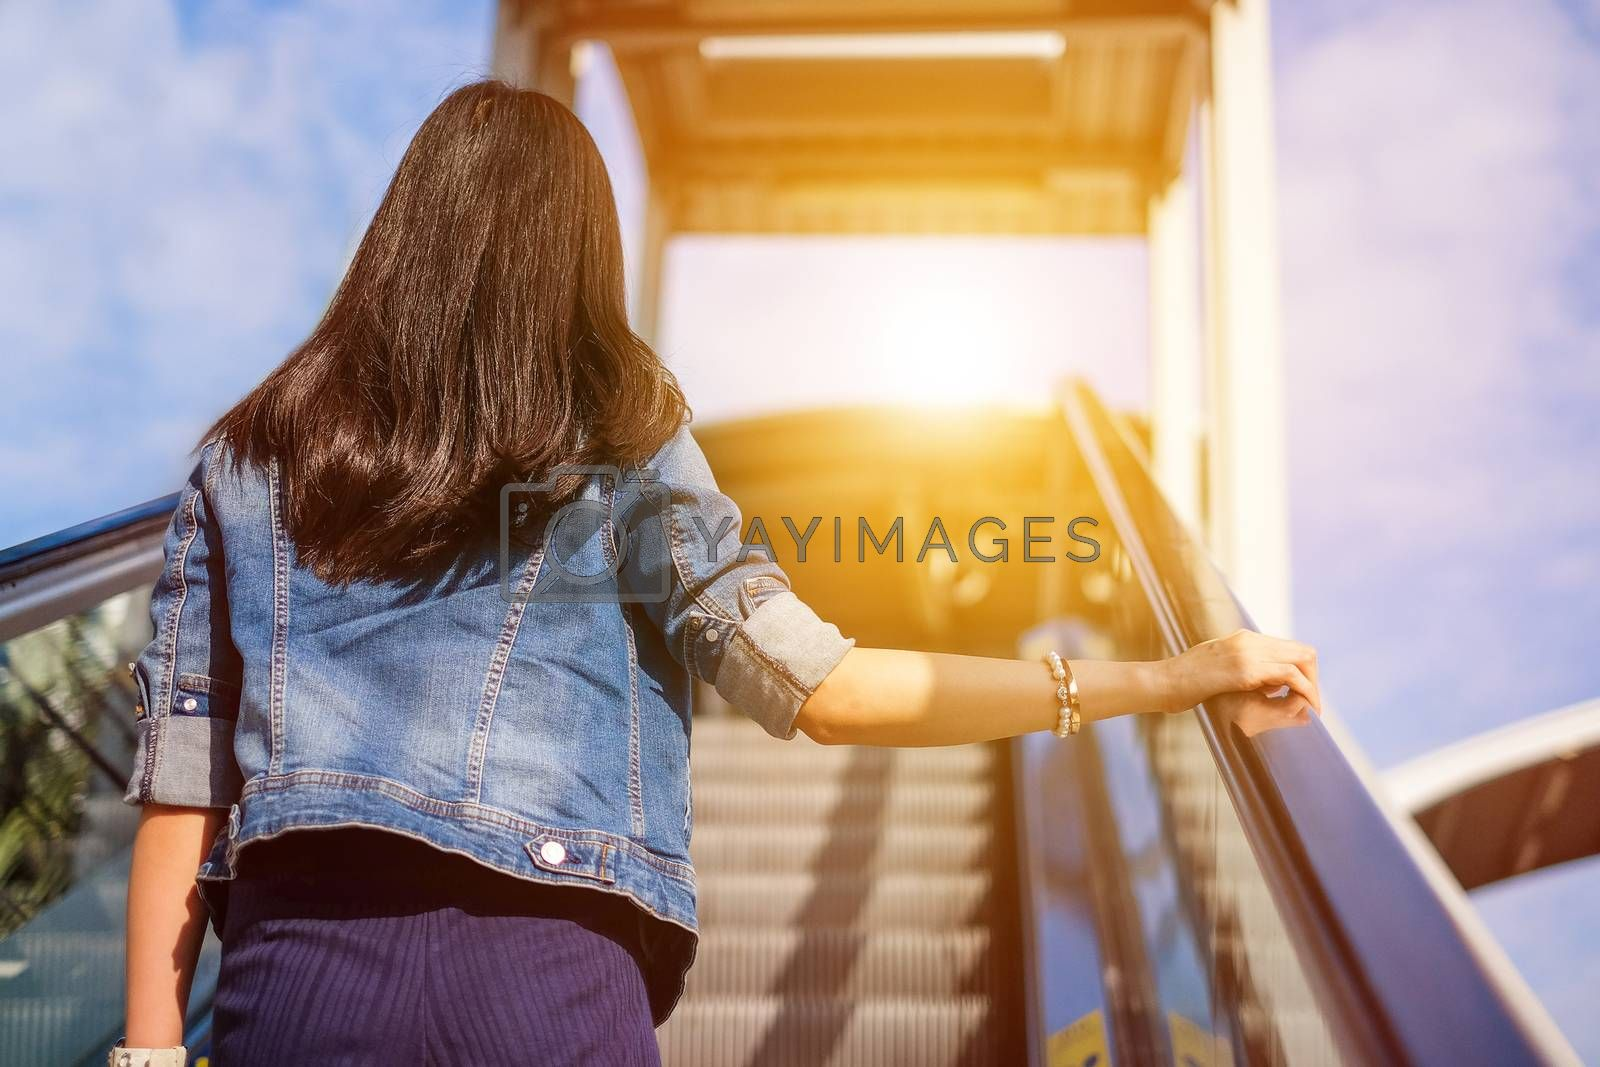 Young woman walking up stairs to reach her destination by Surasak